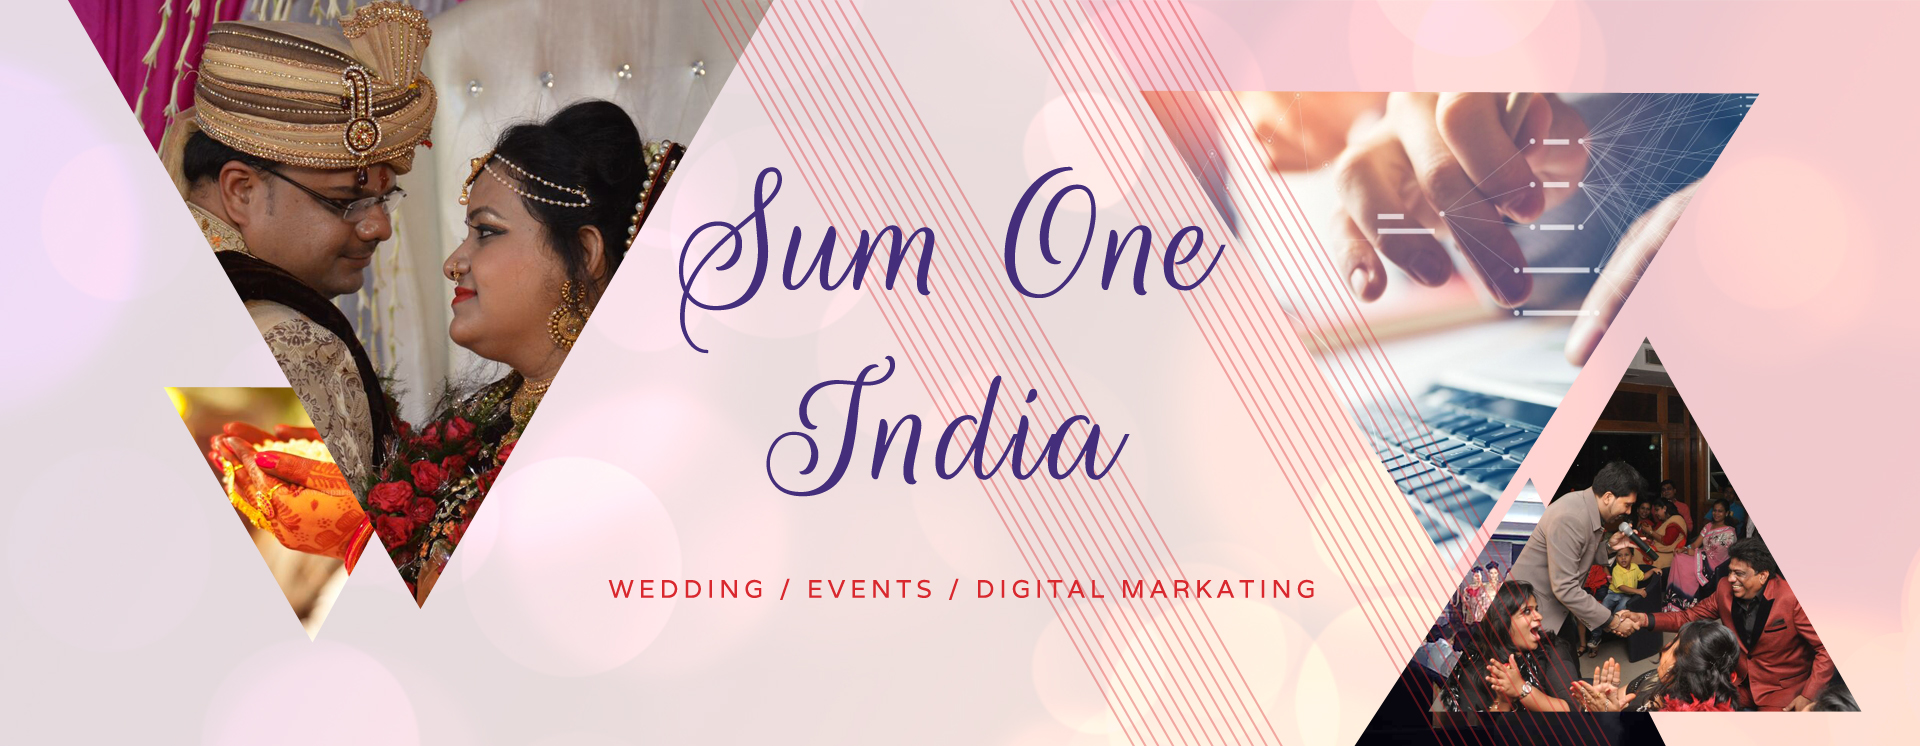 Digital Marketing, Event Management, Wedding Planning firm